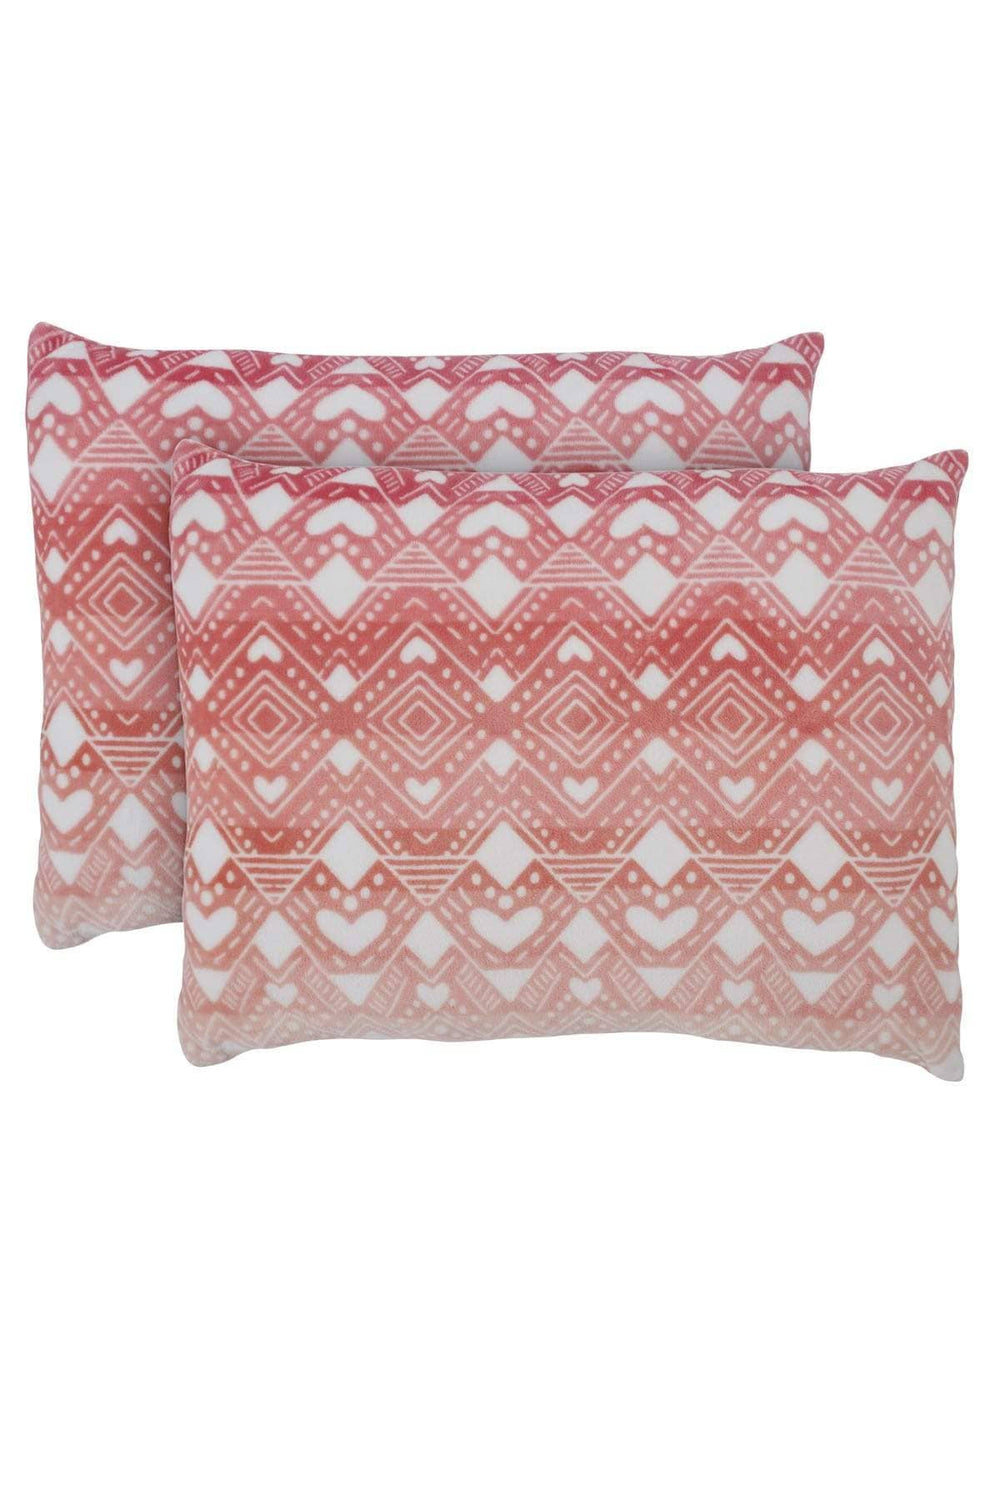 Tessie Coral Ultra Soft Plush Pillow Pair - Ivory Ella - Home